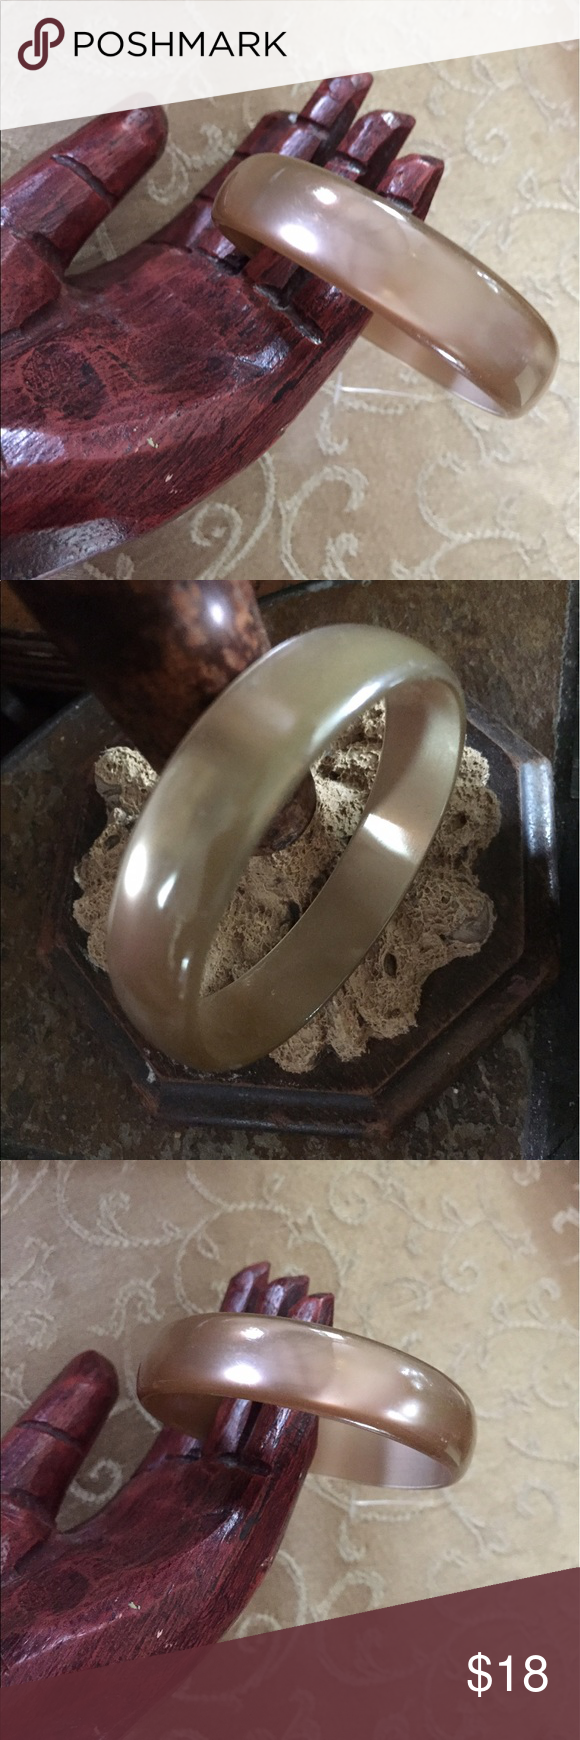 """Vintage Taupe Moonglow Bangle Bracelet A lovely Vintage Taupe Moonglow Bangle Bracelet. Moonglow has a deep pearlized appearance. Measures slightly over 1/2"""" wide. In excellent preowned vintage condition. Vintage Jewelry Bracelets"""